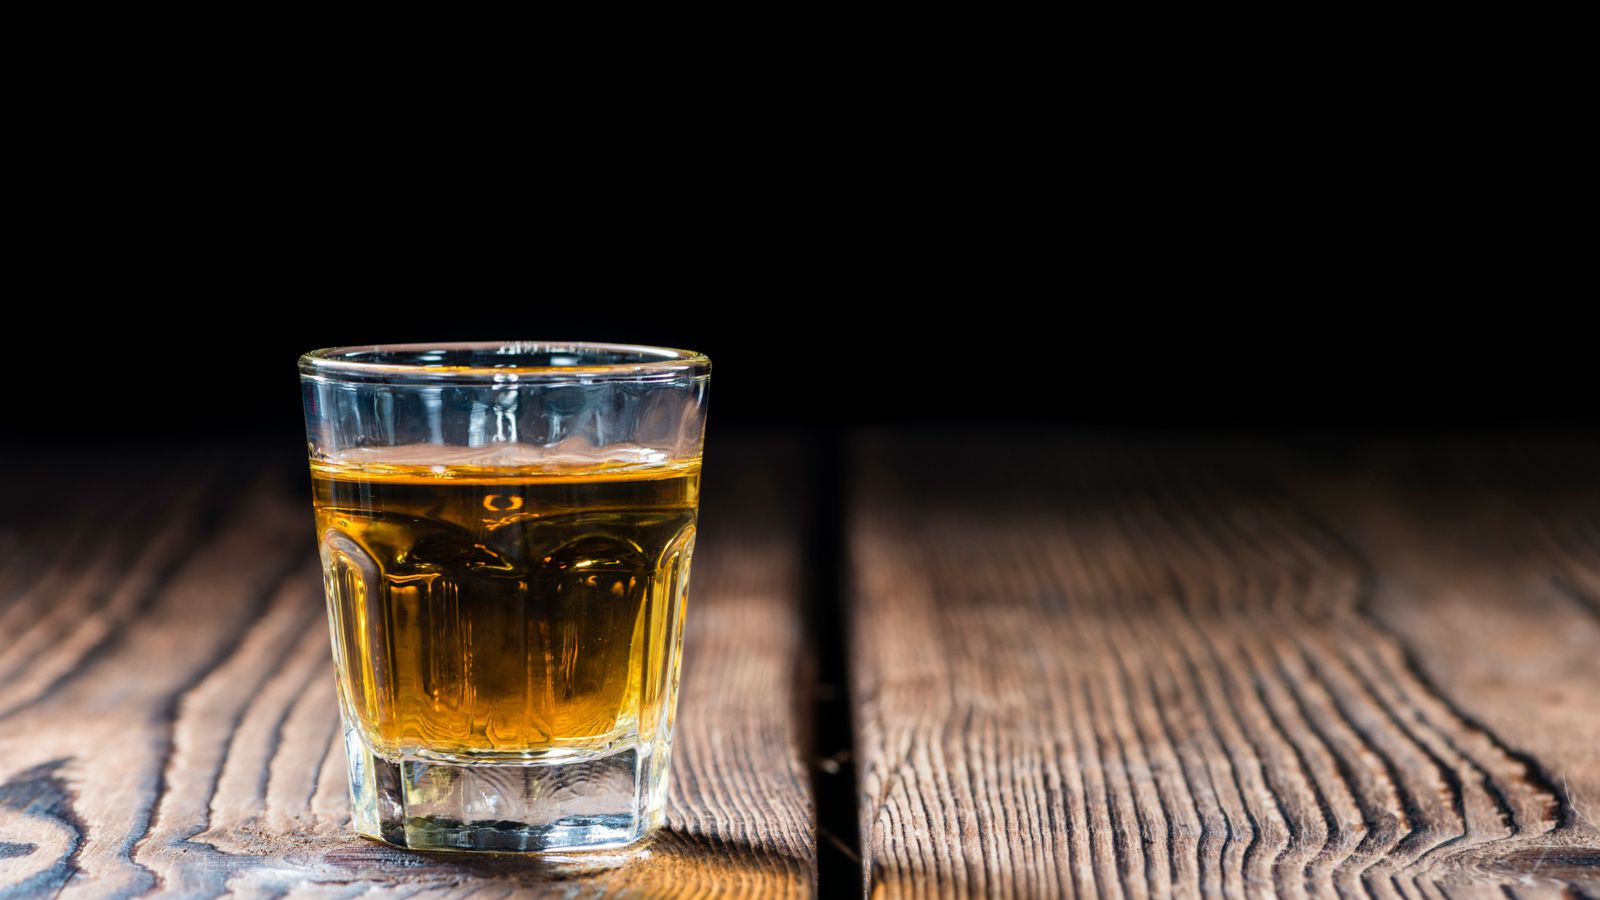 Does Whiskey Need an Age Stamp to be Good?